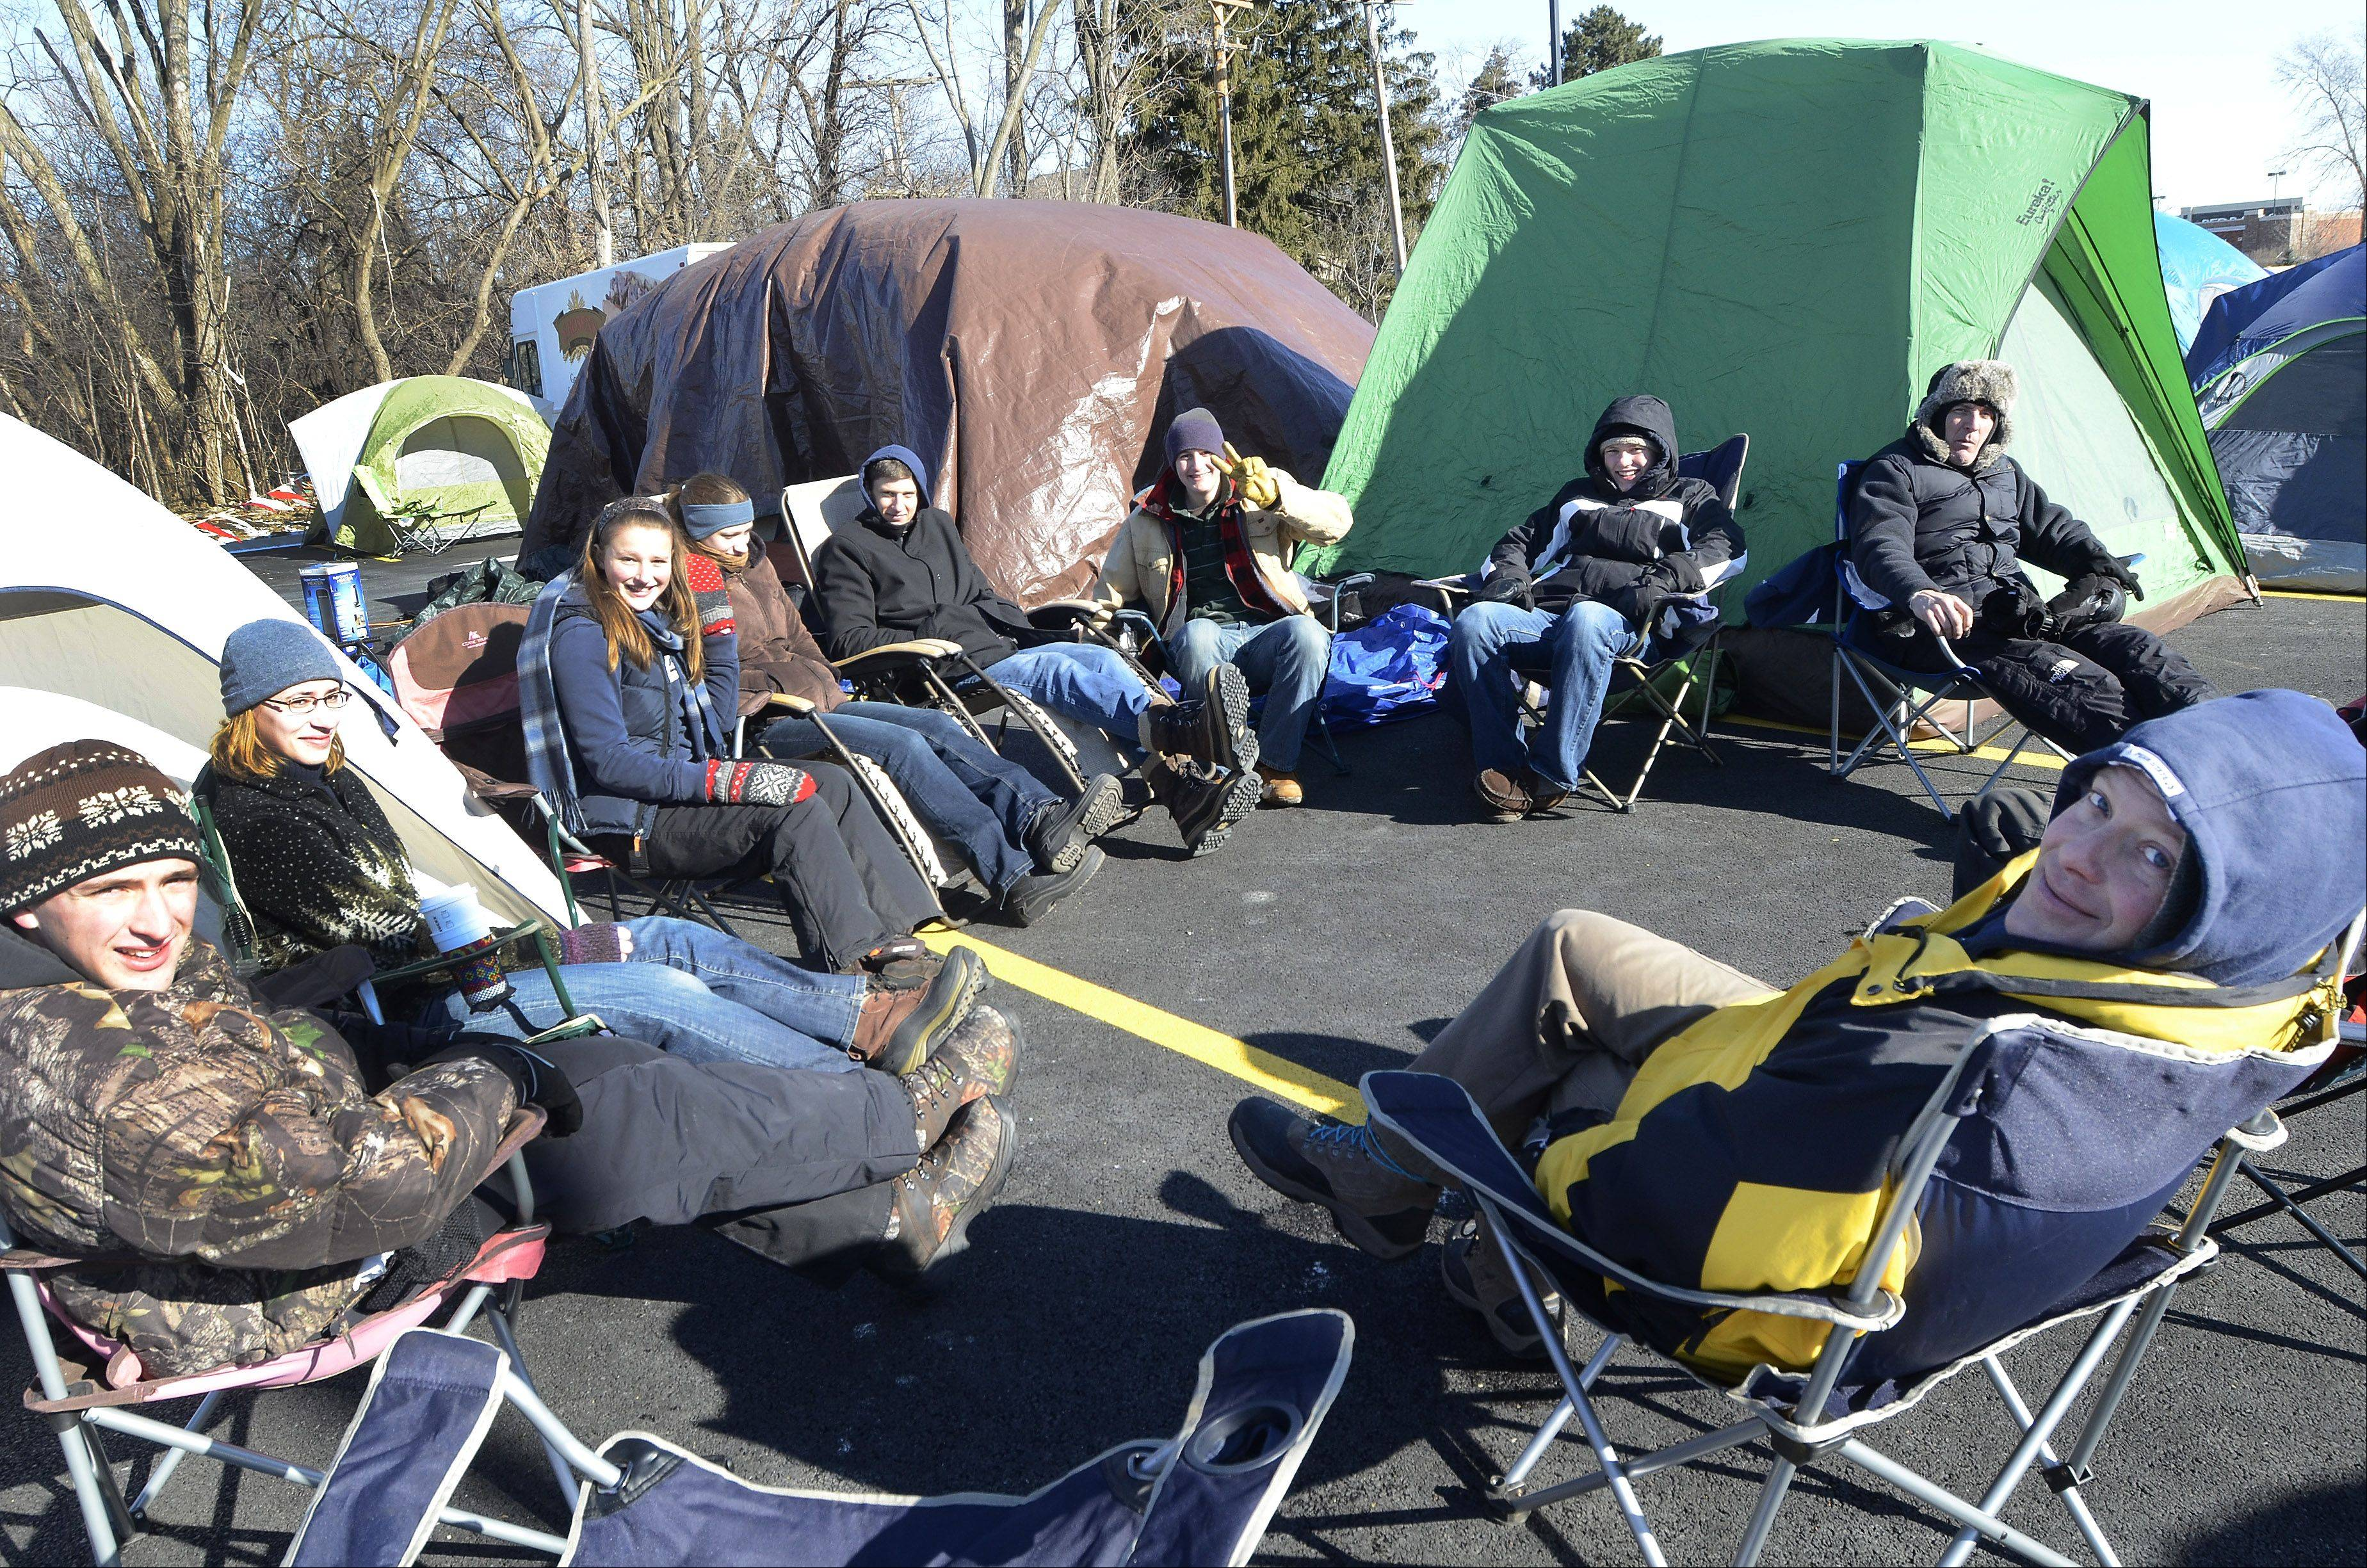 Joel Fox of Des Plaines, right, camps out Wednesday with family and friends in a tent city at the new Mount Prospect Chick-fil-A.